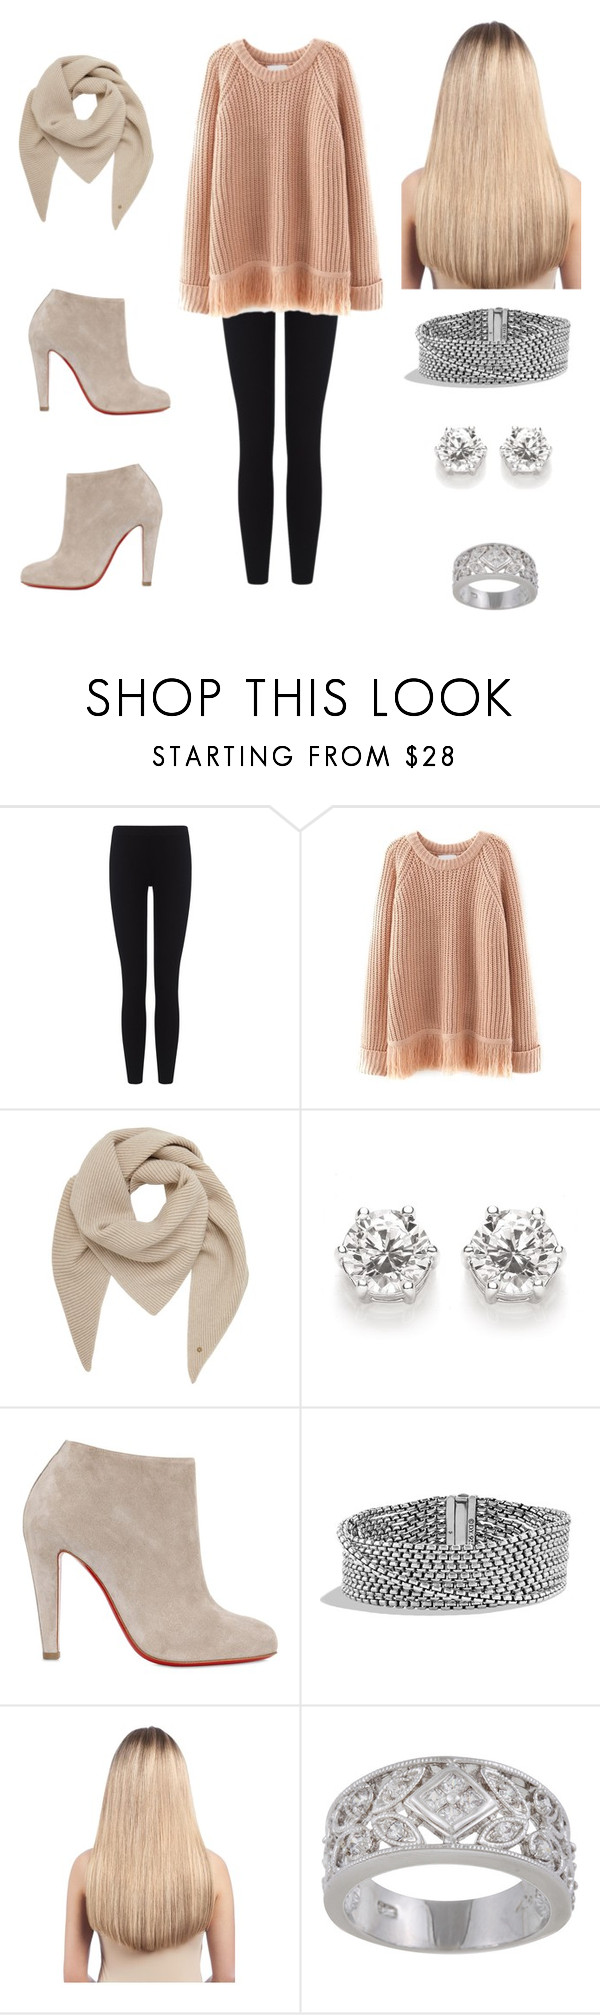 """""""Untitled #148"""" by cls-lax ❤ liked on Polyvore featuring James Perse, Mulberry, Christian Louboutin, David Yurman, Extension Professional, Sterling Essentials, women's clothing, women, female and woman"""